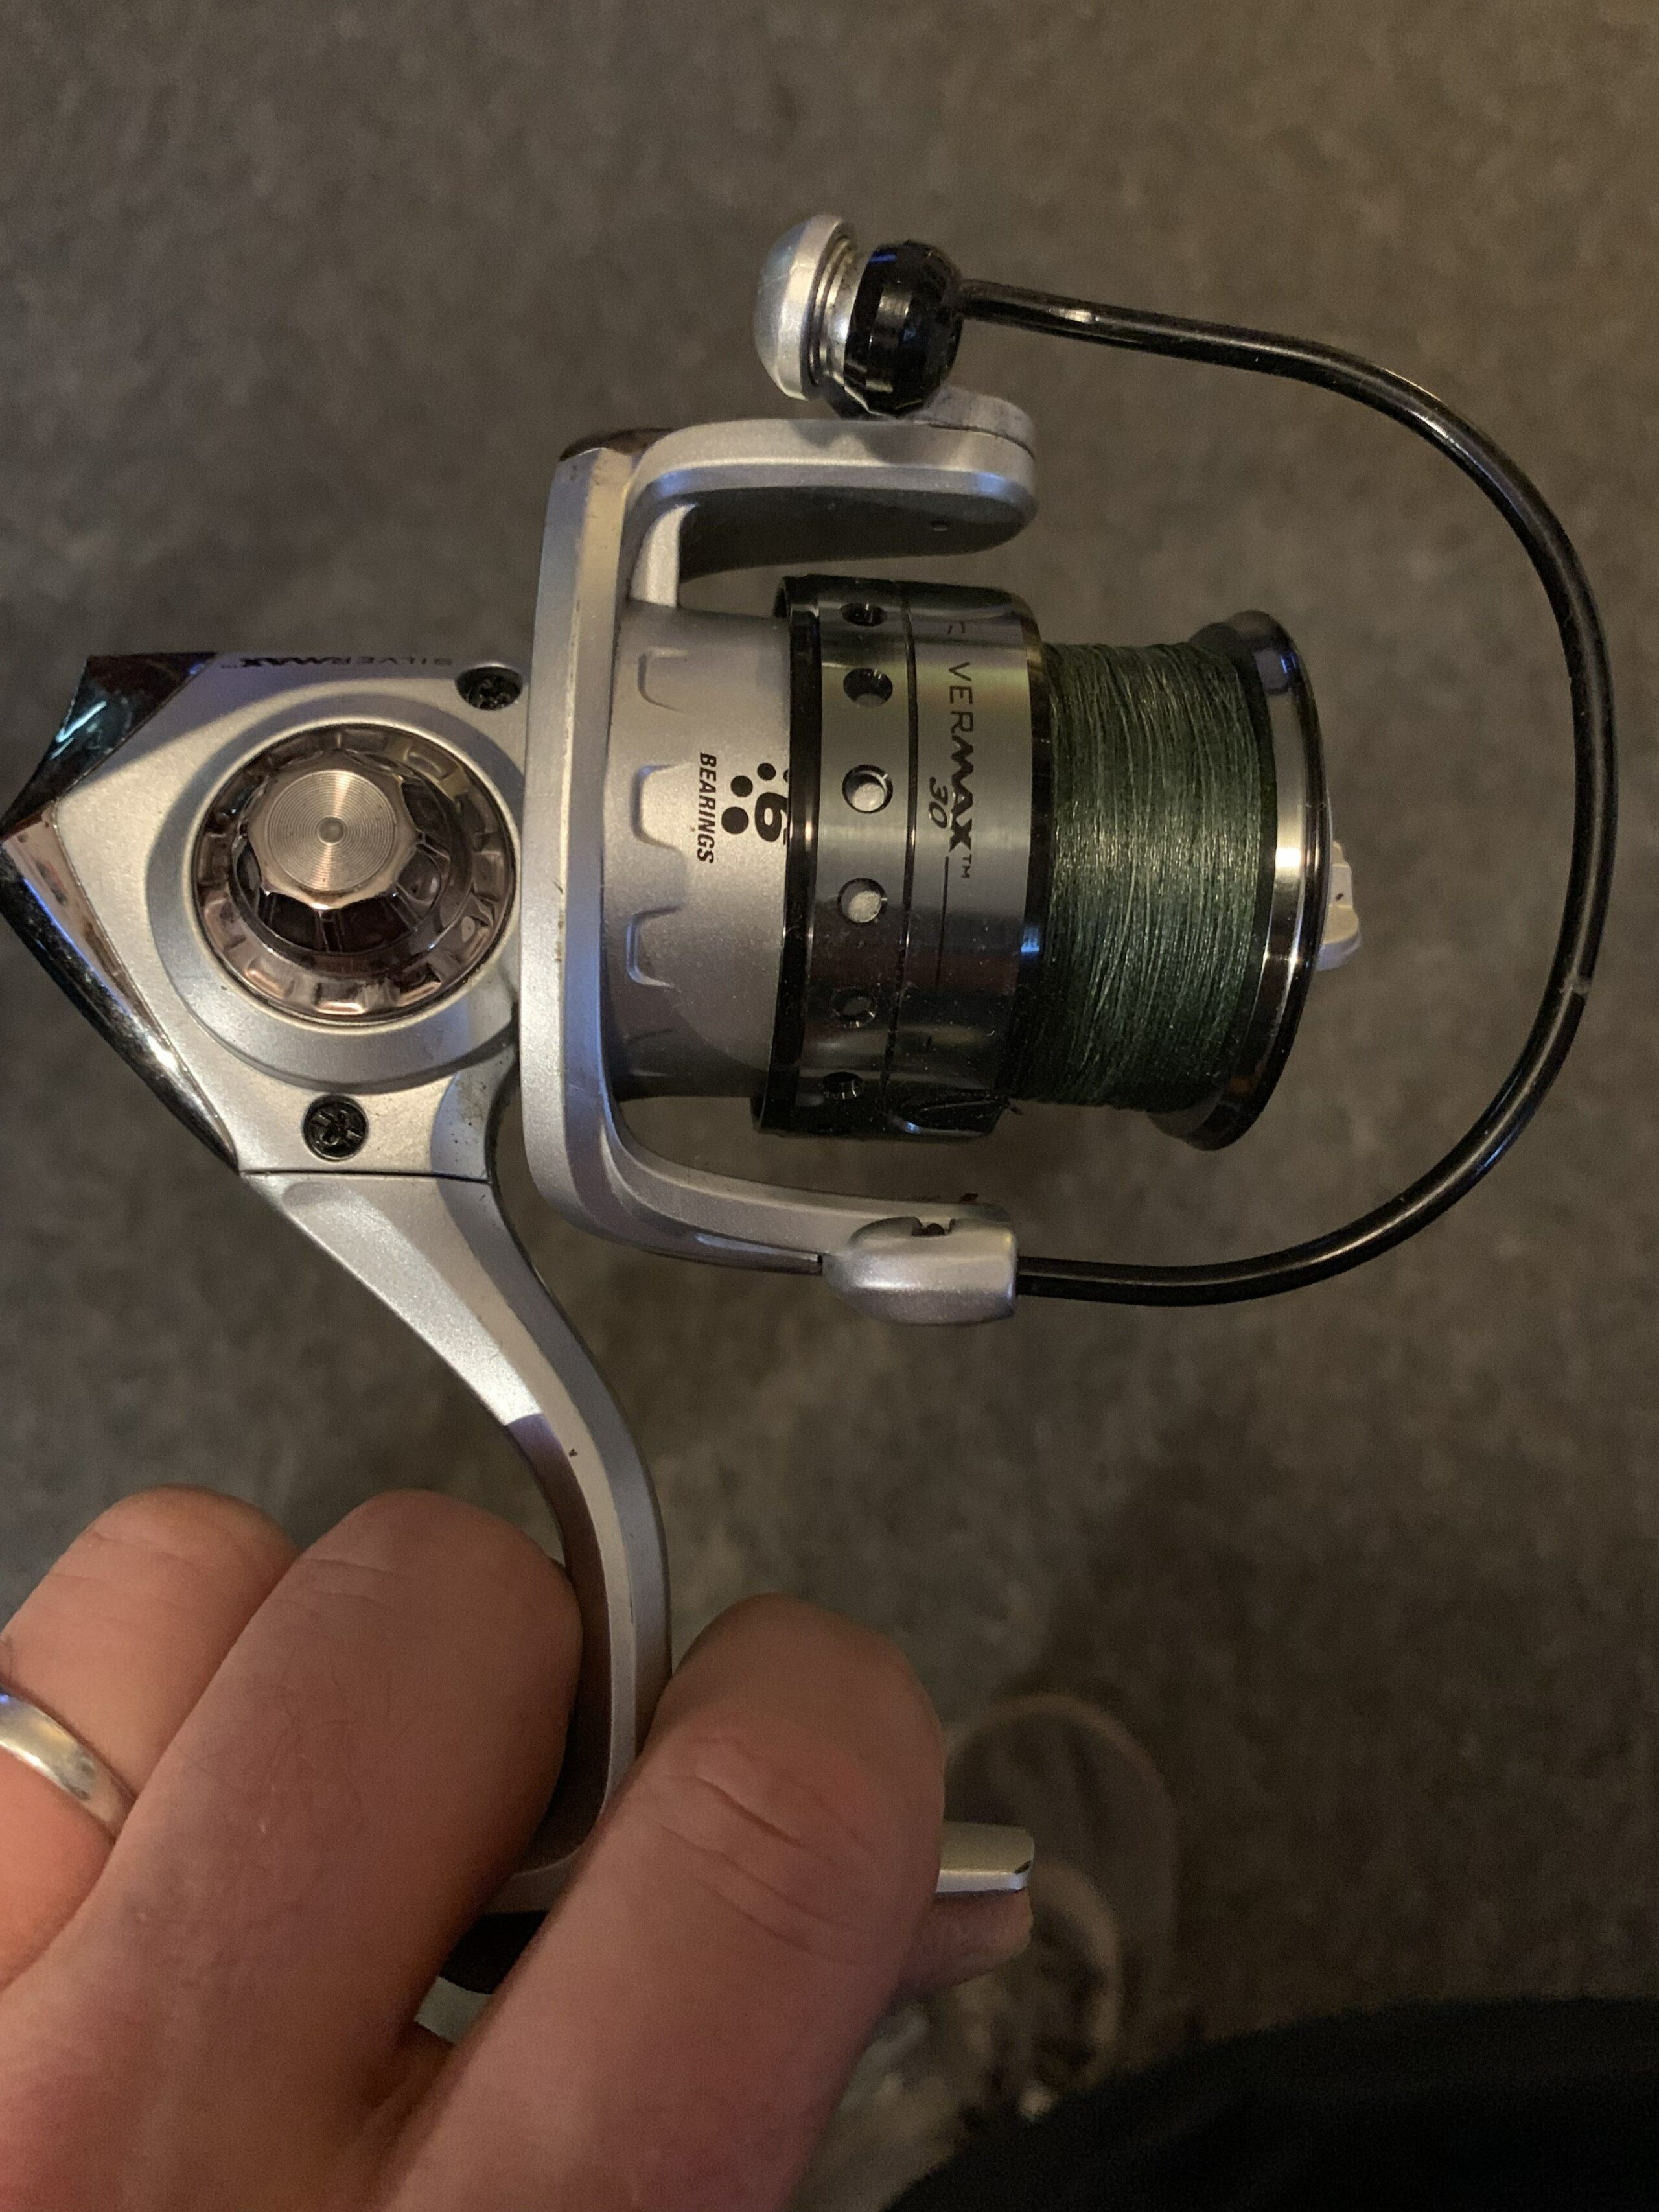 Person's hand holding a spinning fishing reel.